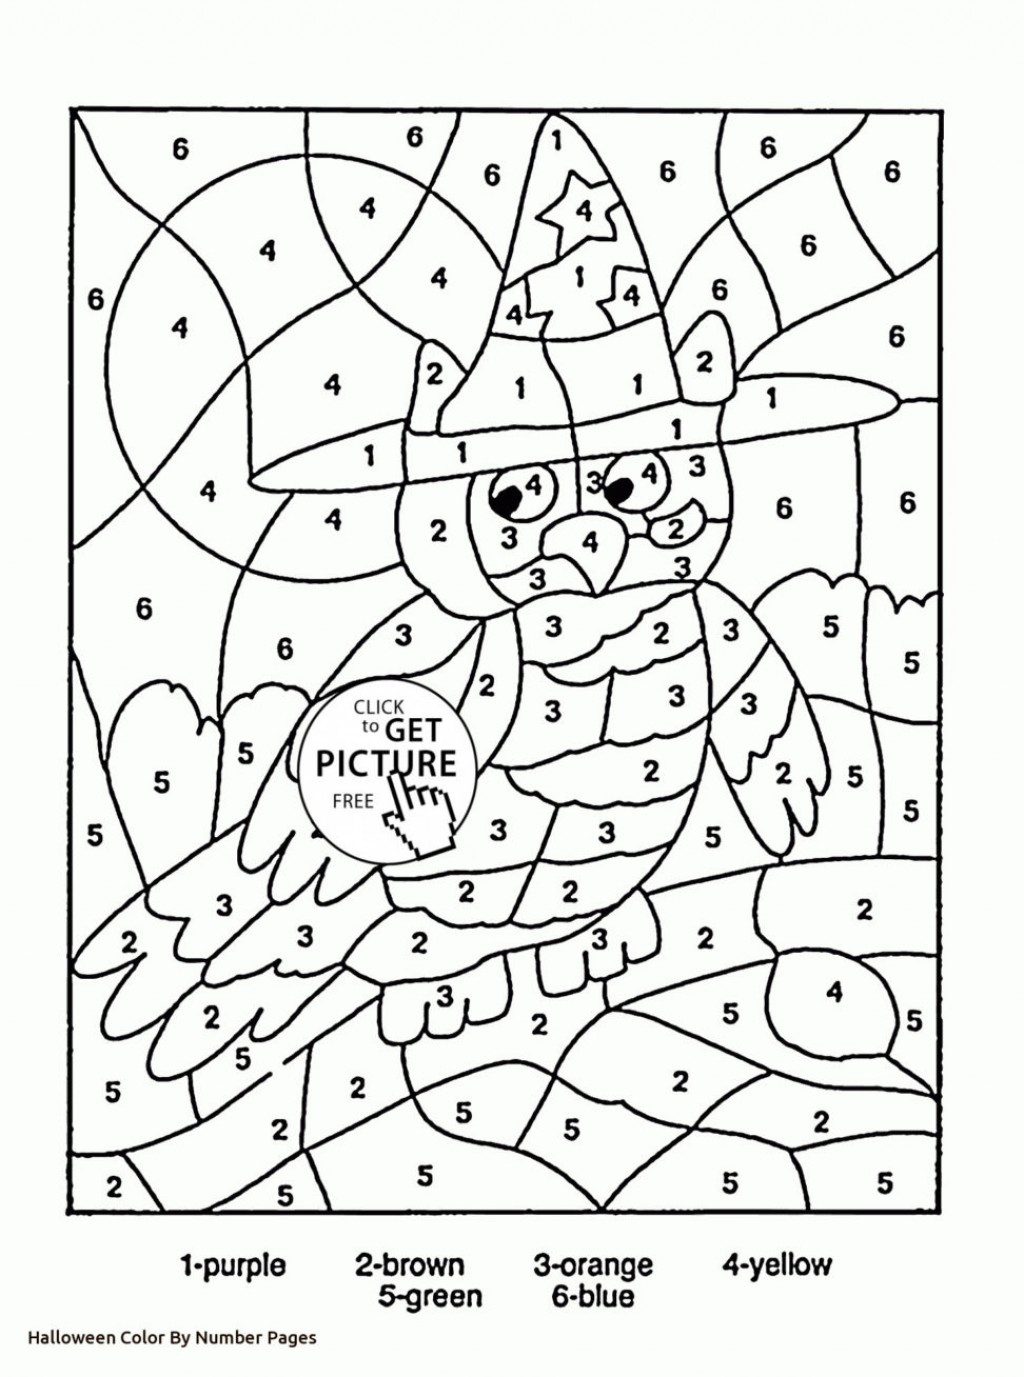 Math Worksheets Colornumber 4Th Grade Coloring Pages Fresh - Free | Free Printable Color By Number Addition Worksheets